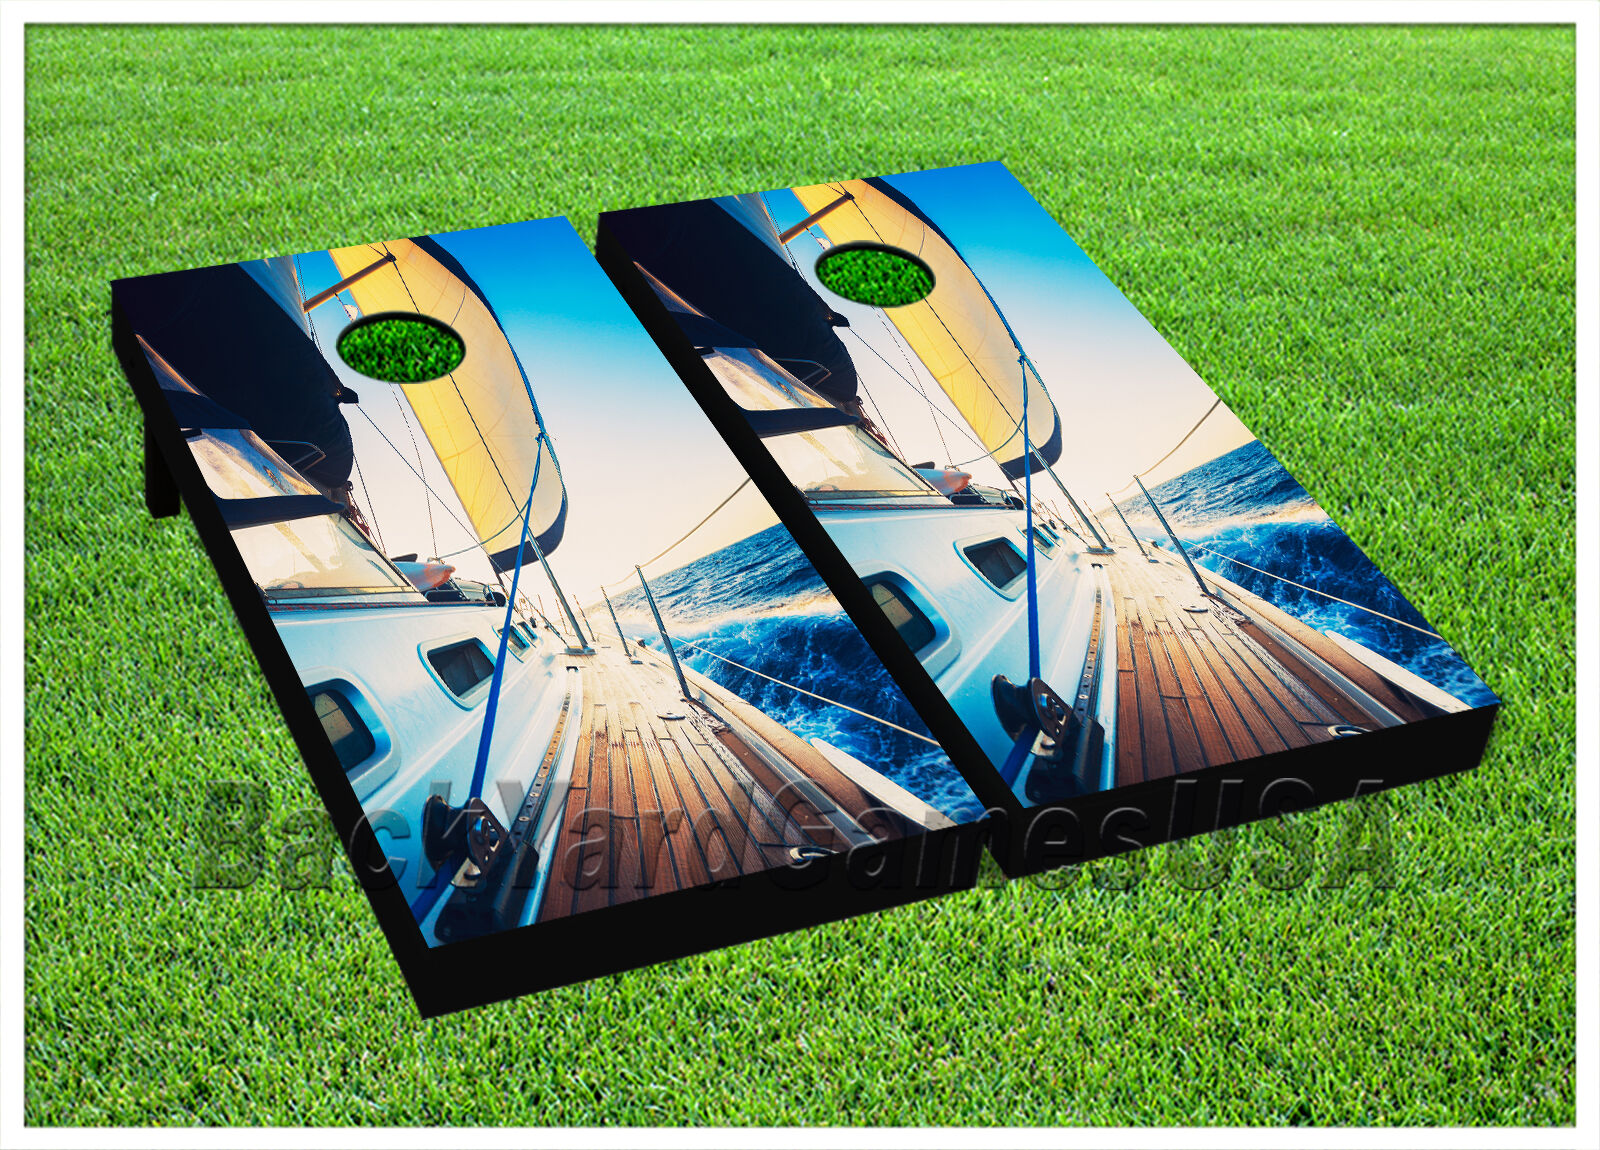 Ship Boat Ocean Sea Lake CORNHOLE BEANBAG TOSS GAME w  Bags Game Boards Set 791  shop makes buying and selling